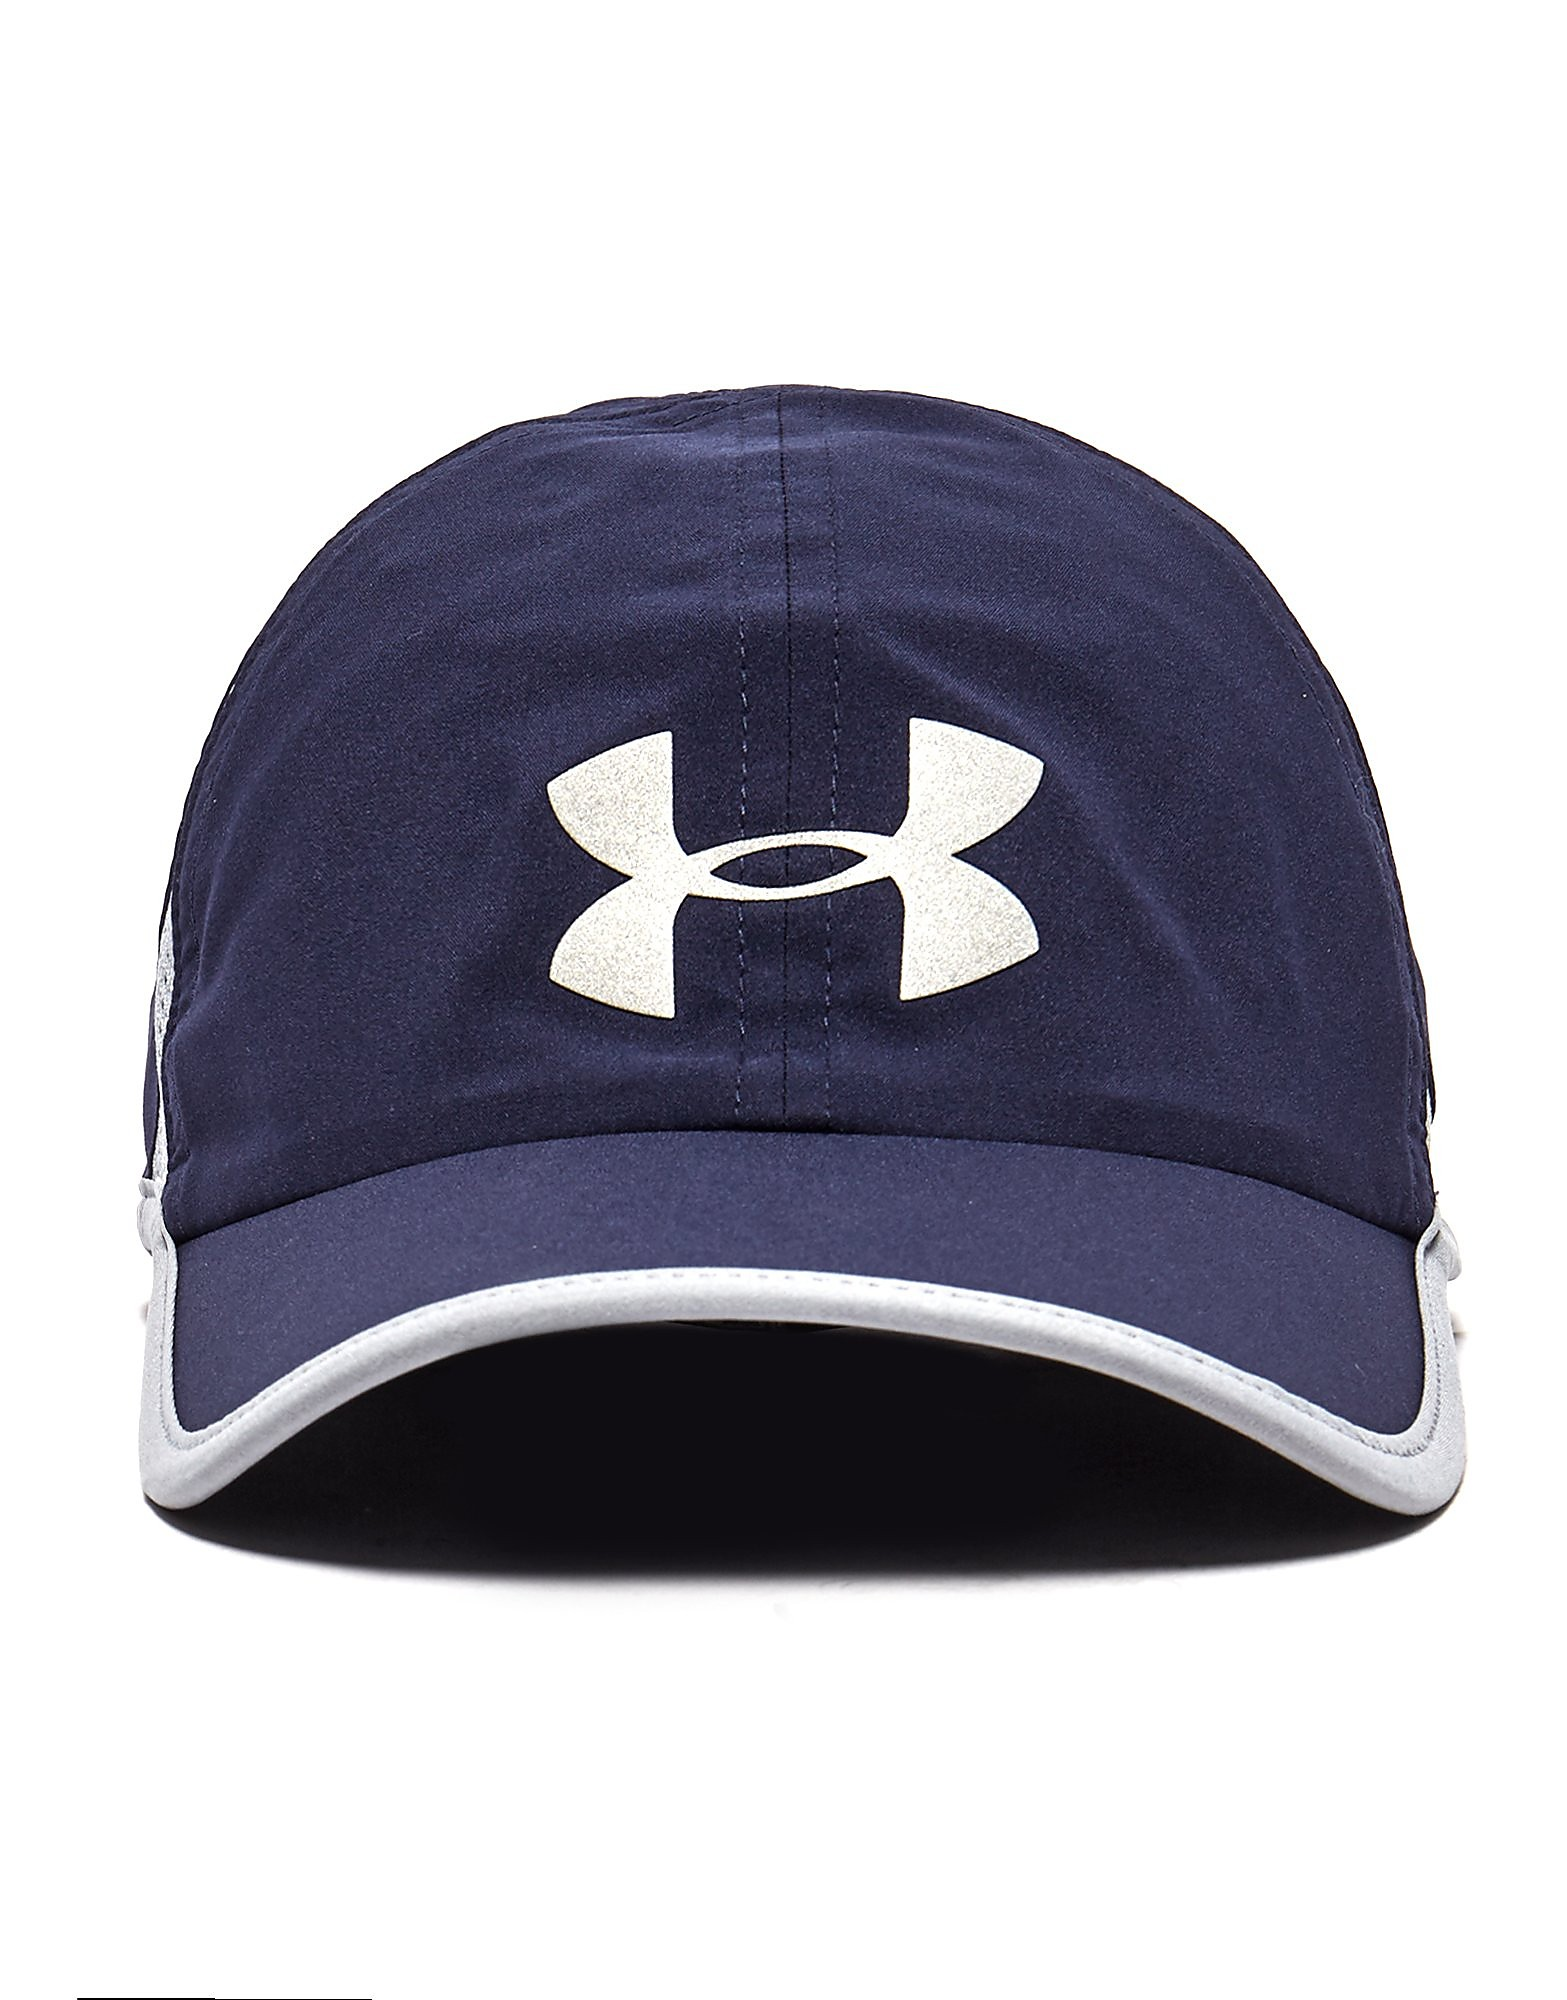 Under Armour Shadow Cap 4.0